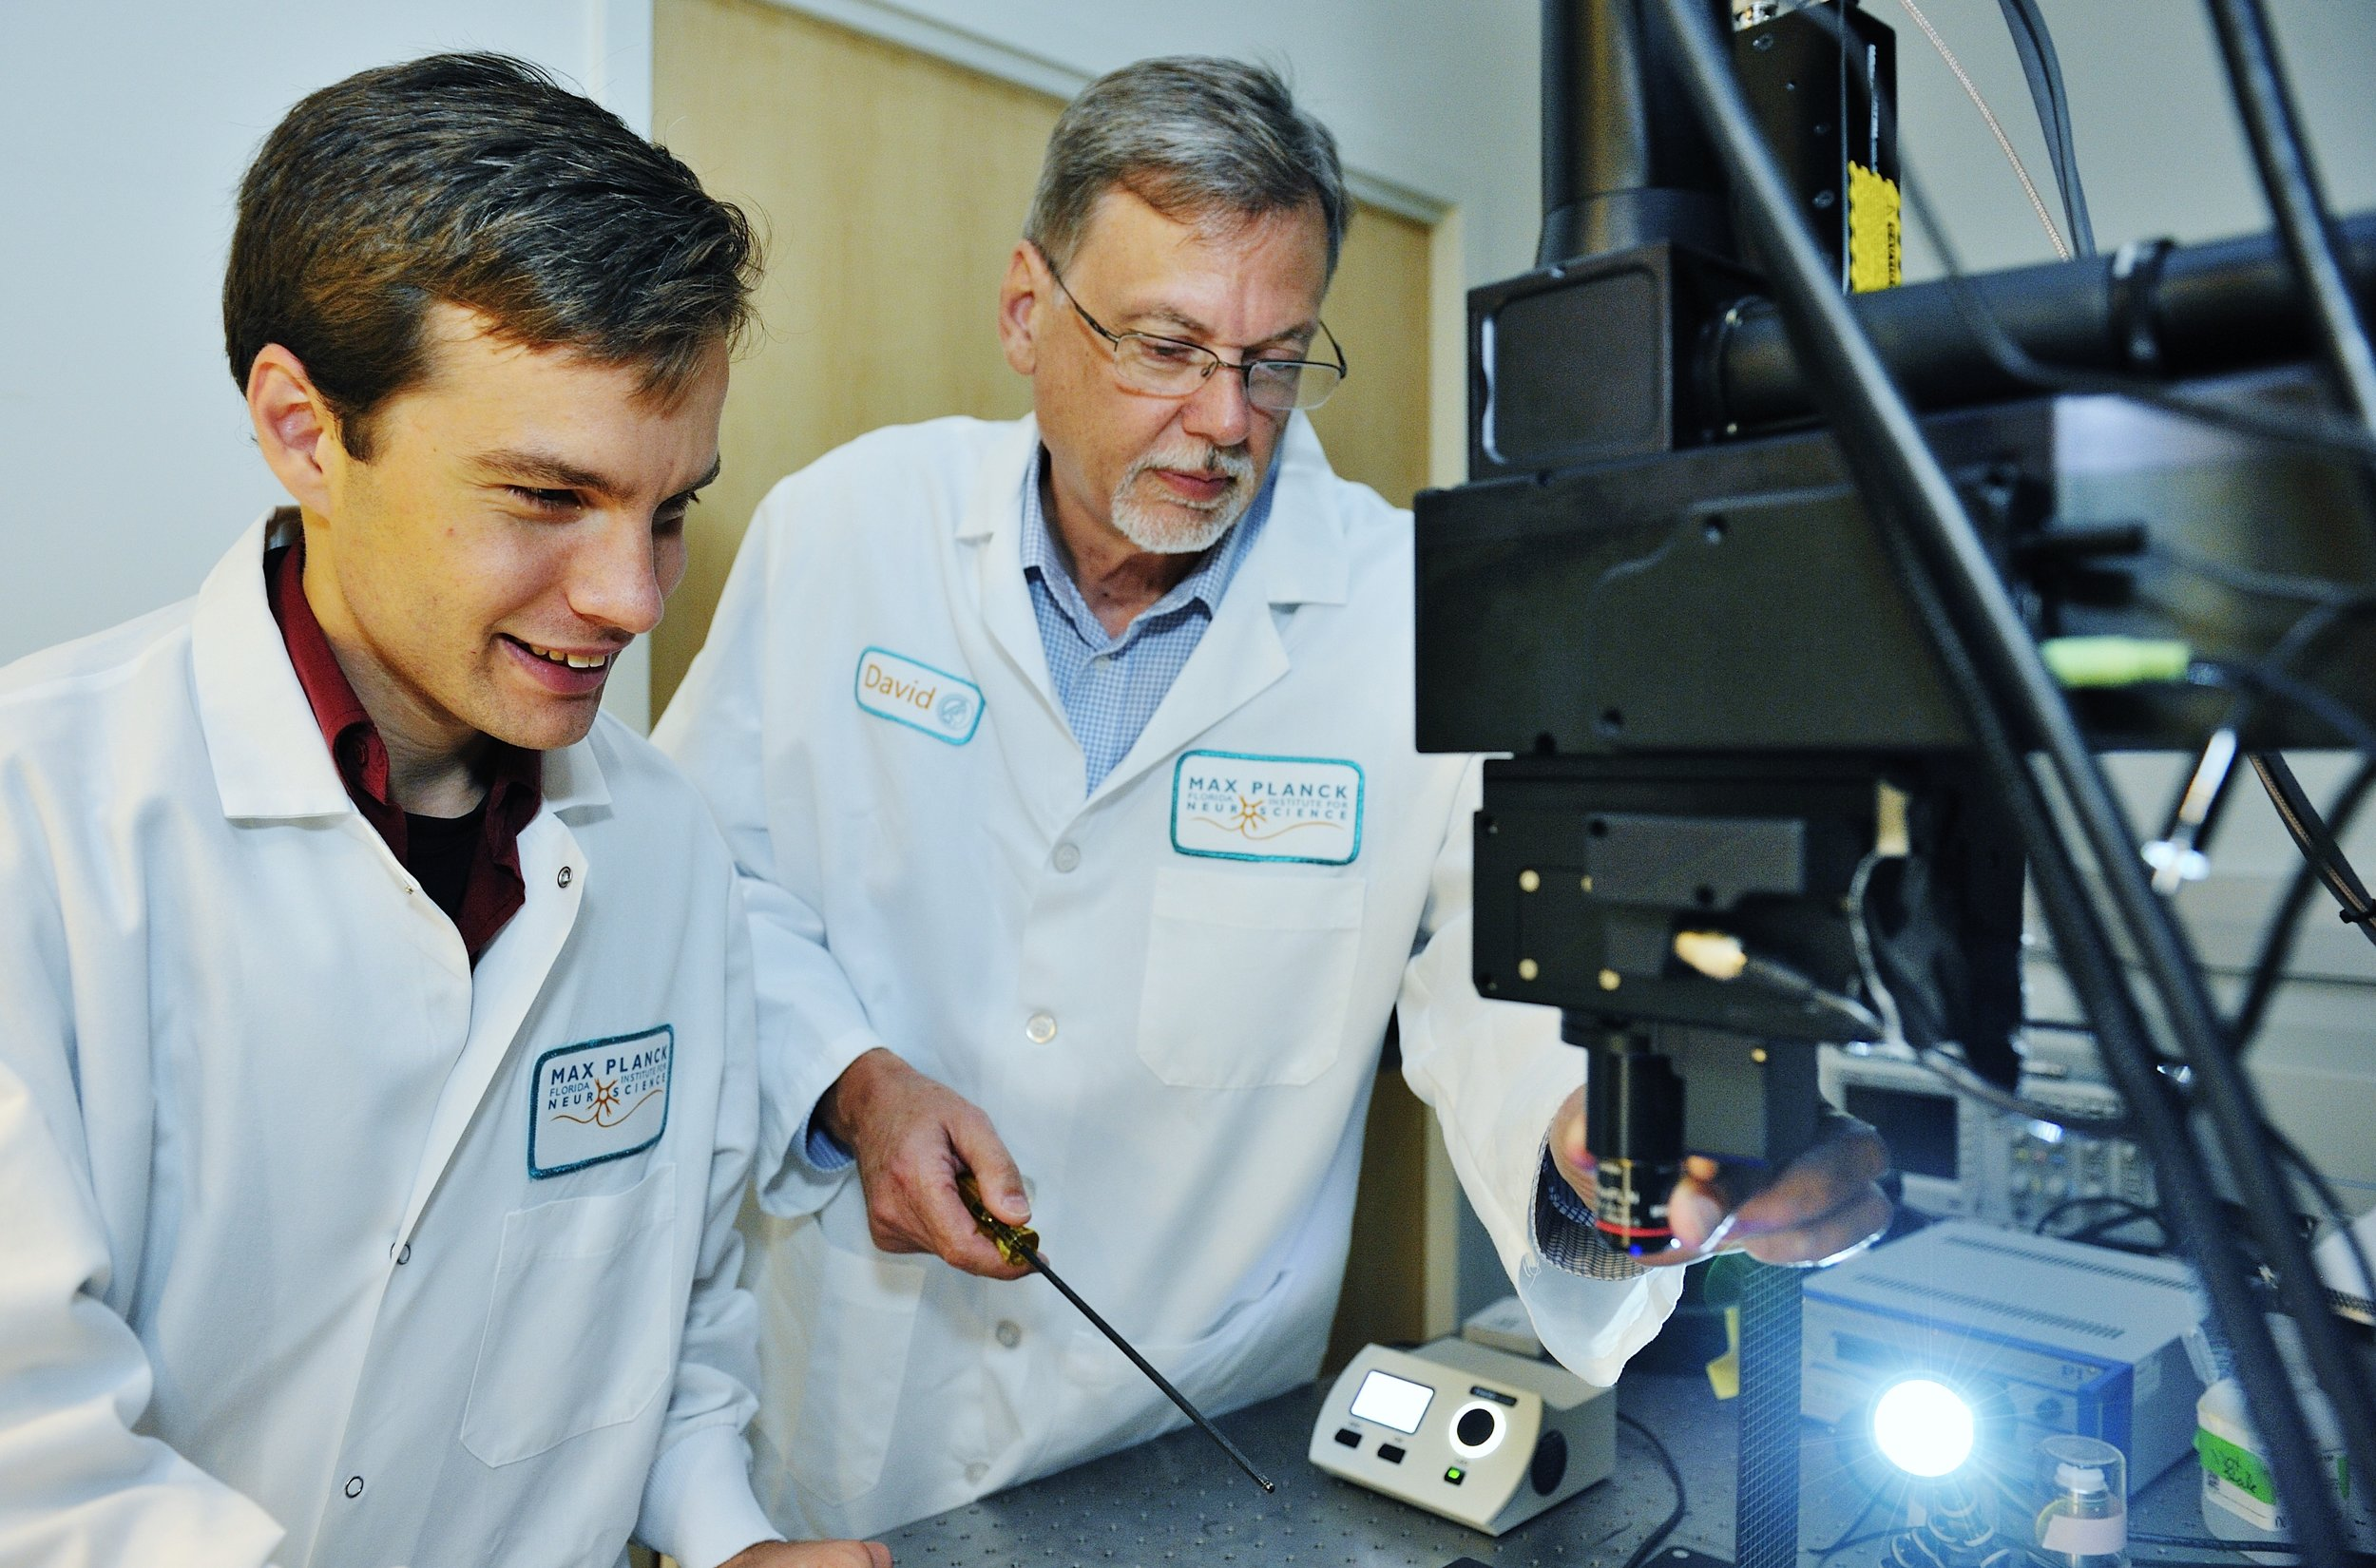 Dave Whitney and David Fitzpatrick adjusting the 2photon microscope.